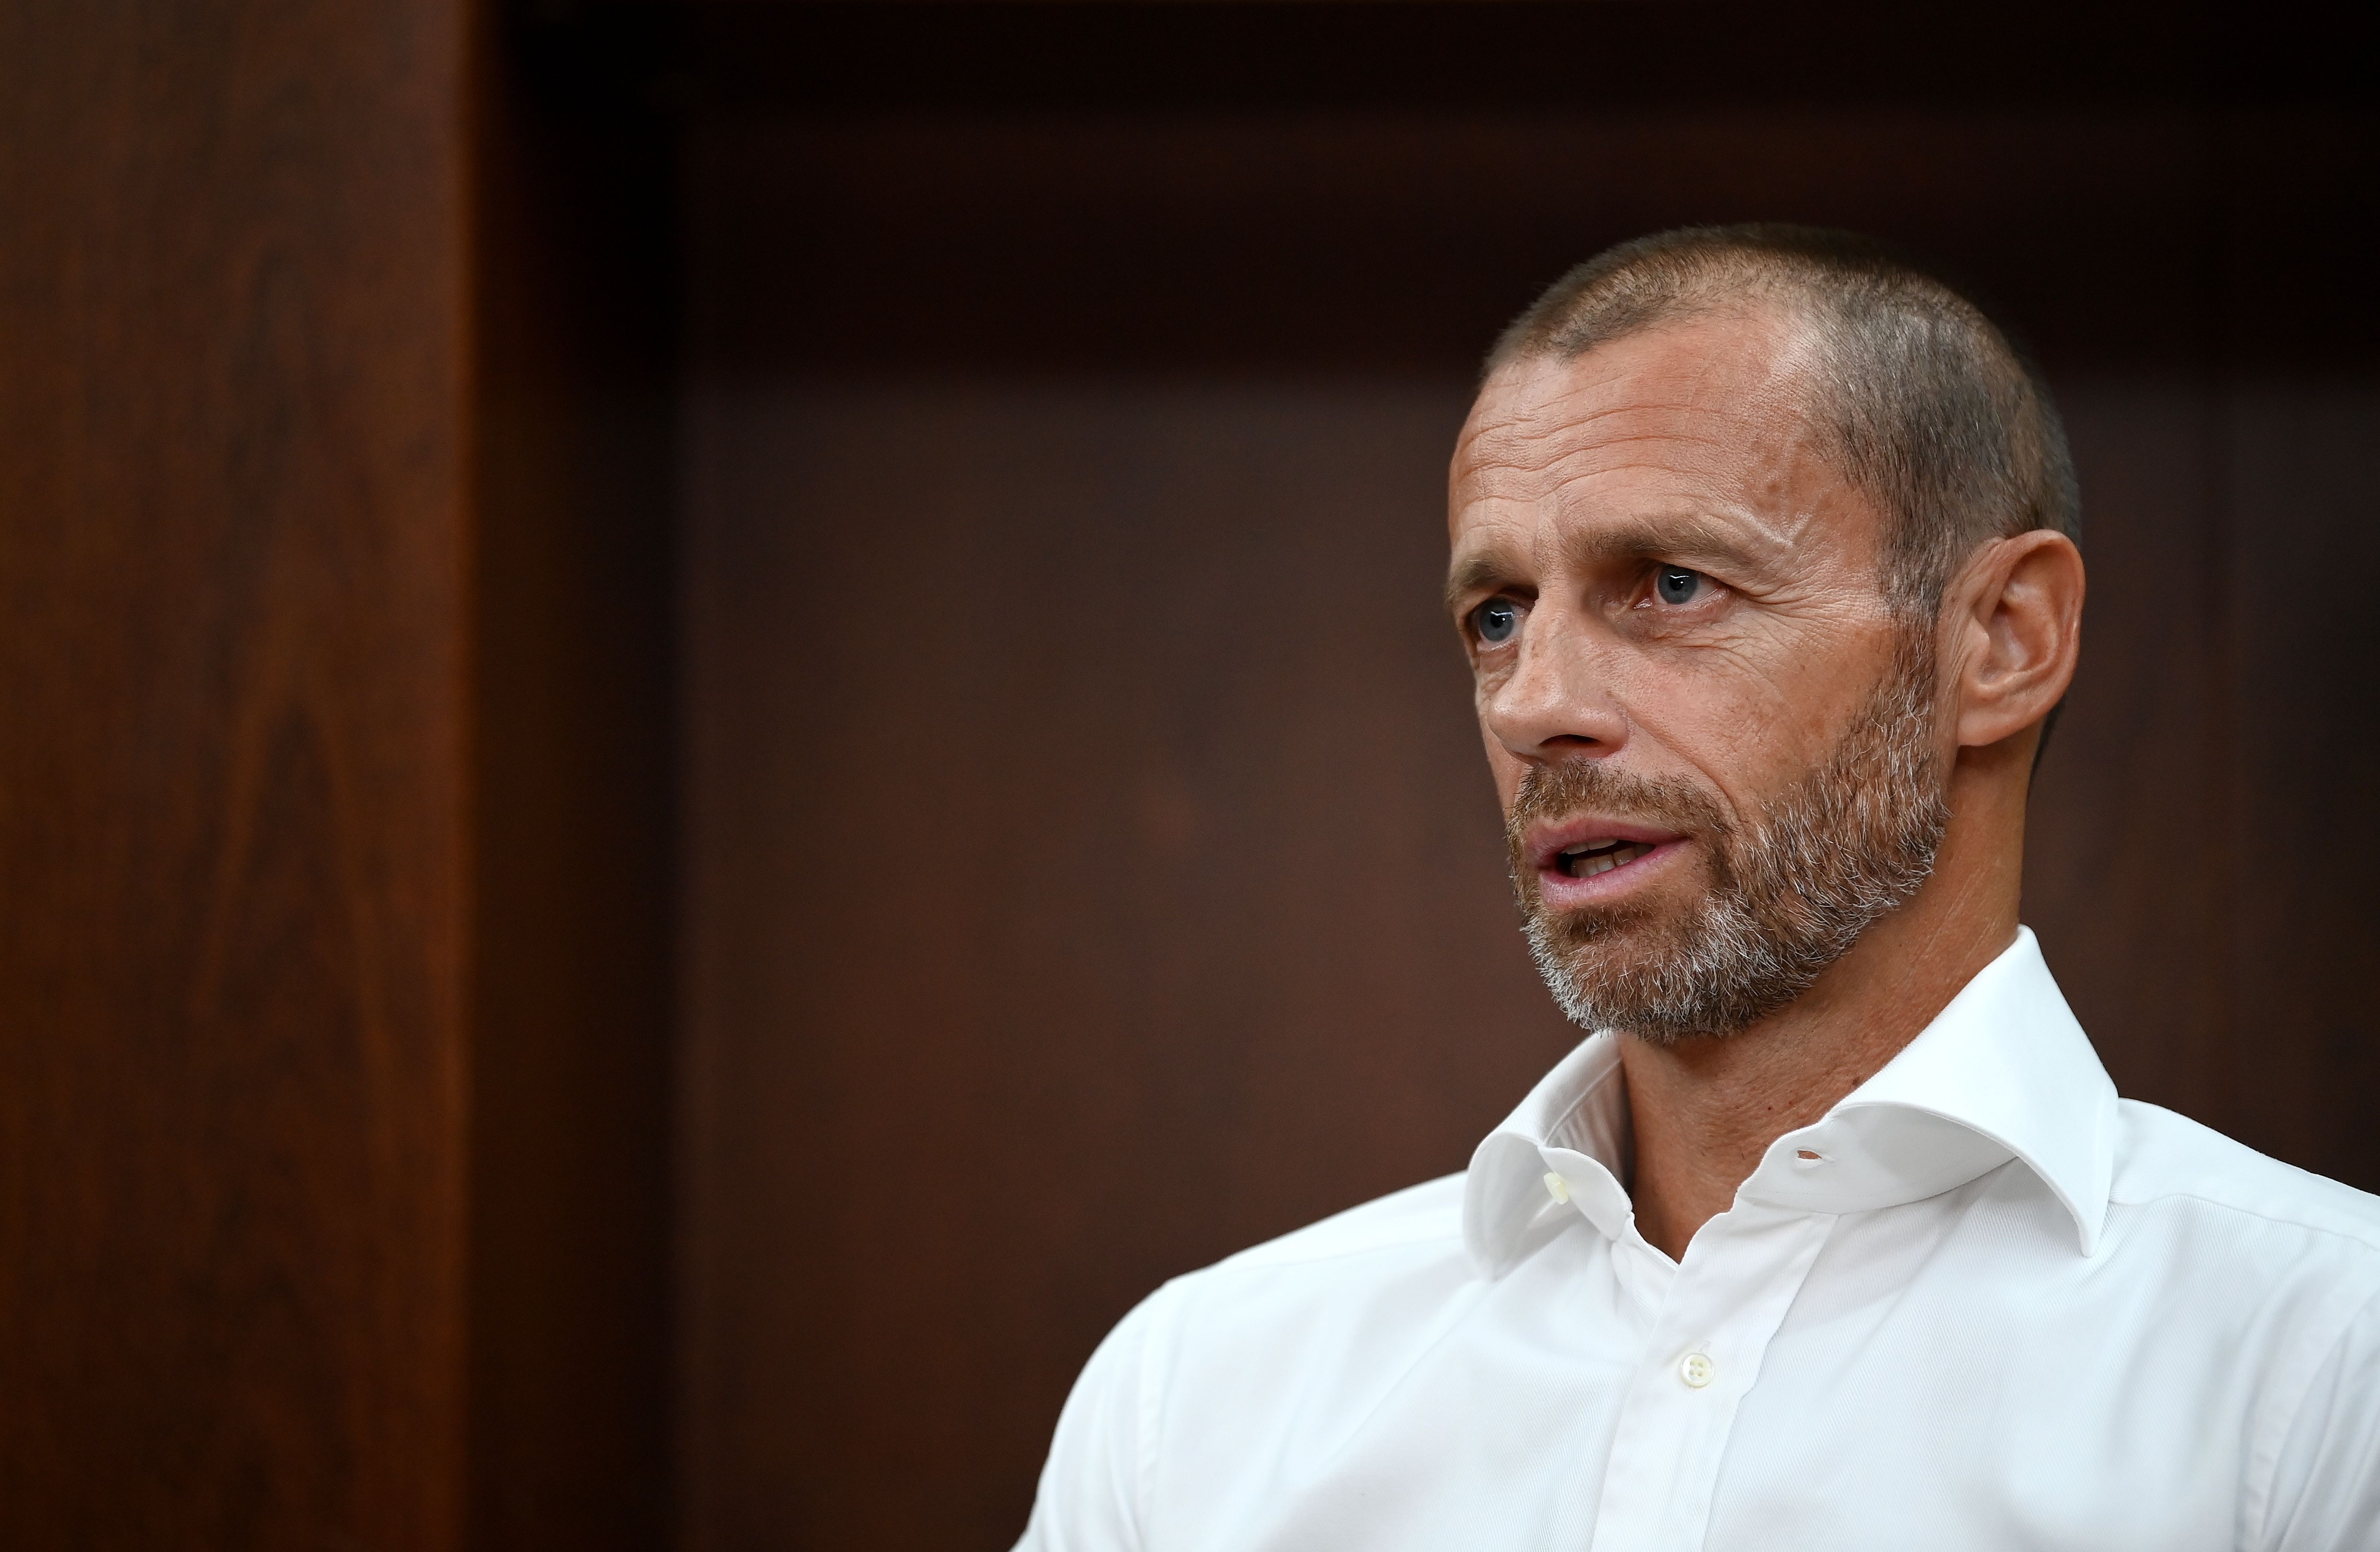 UEFA President Aleksander Čeferin gave an extraordinary press briefing on Monday.